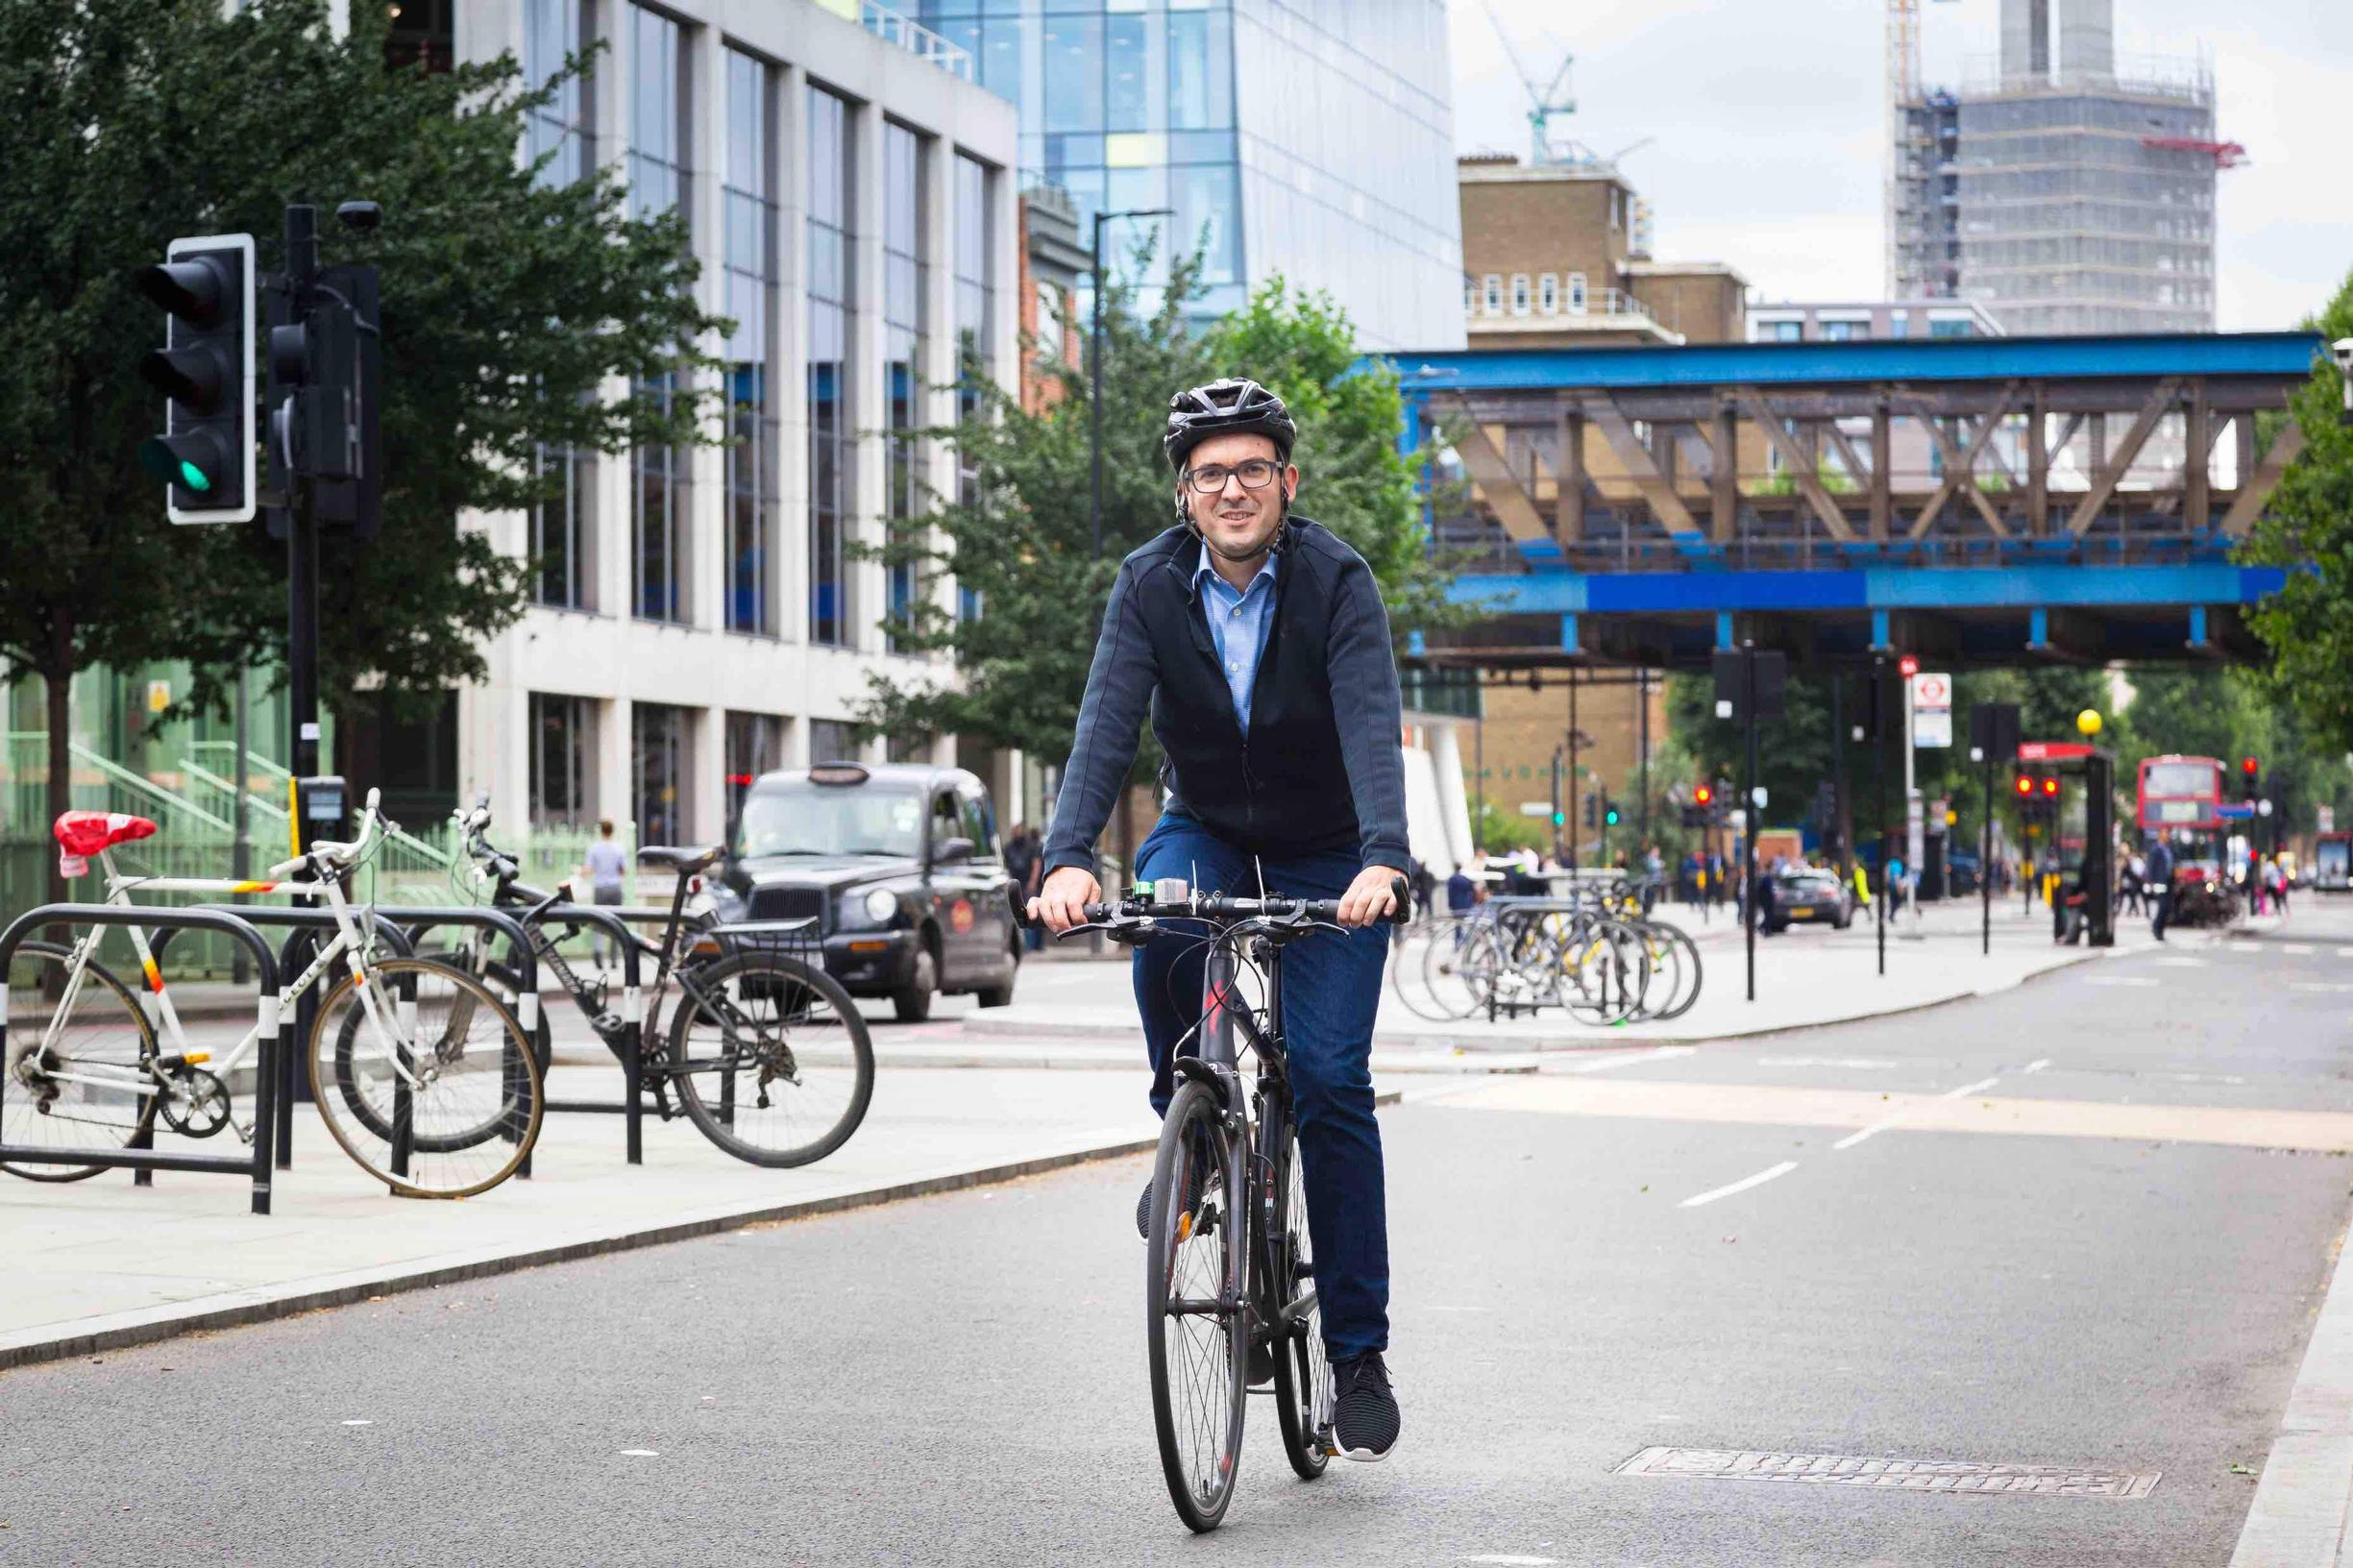 Will Norman: We`re working in close collaboration with London boroughs to design six new cycle routes that would connect key town centres, join up existing cycle infrastructure, and start to create a genuinely pan-London network of cycle routes